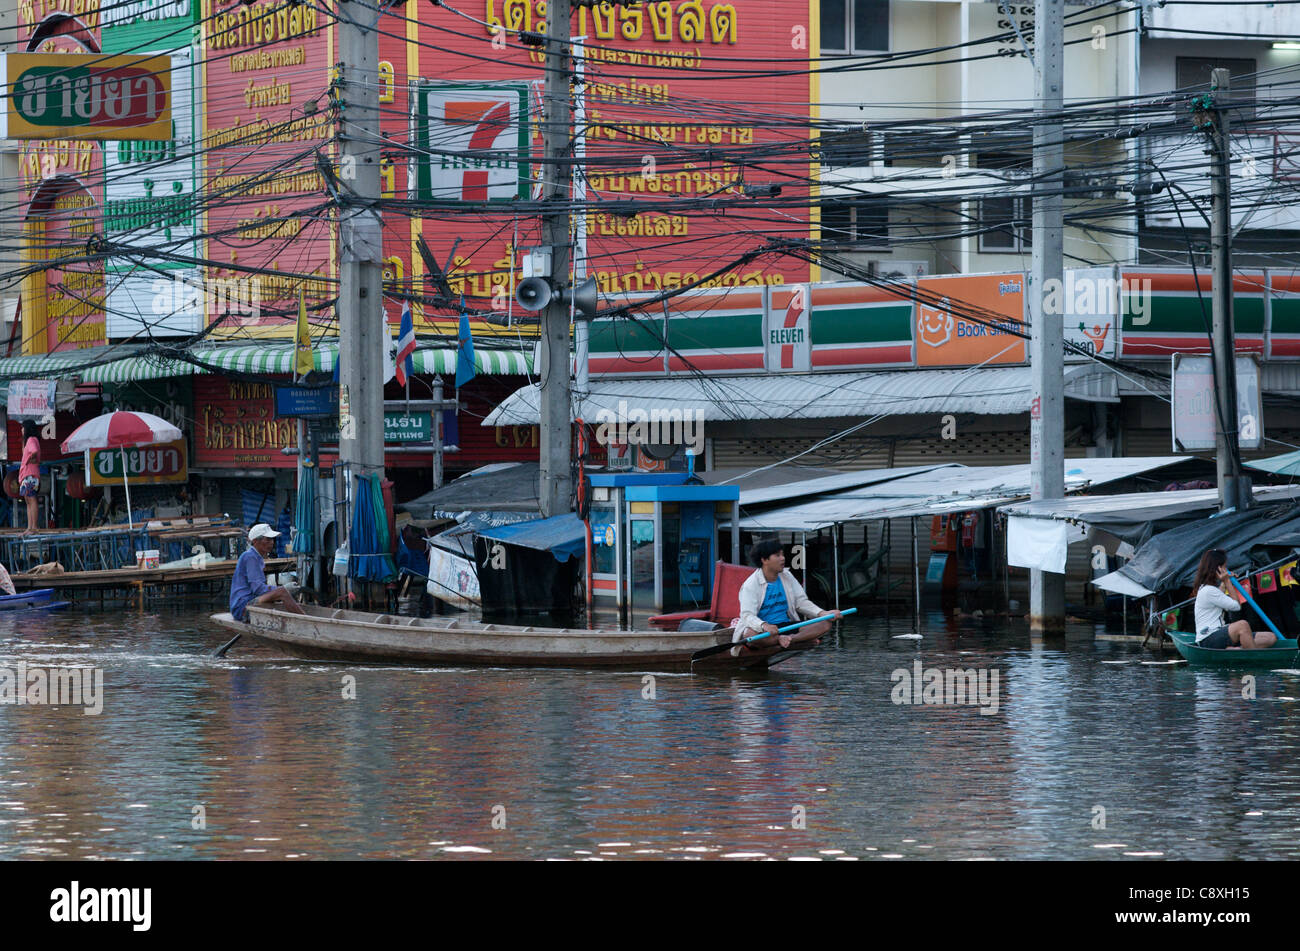 Thai men paddle boat past Flooded 7-11 in Rangsit, a